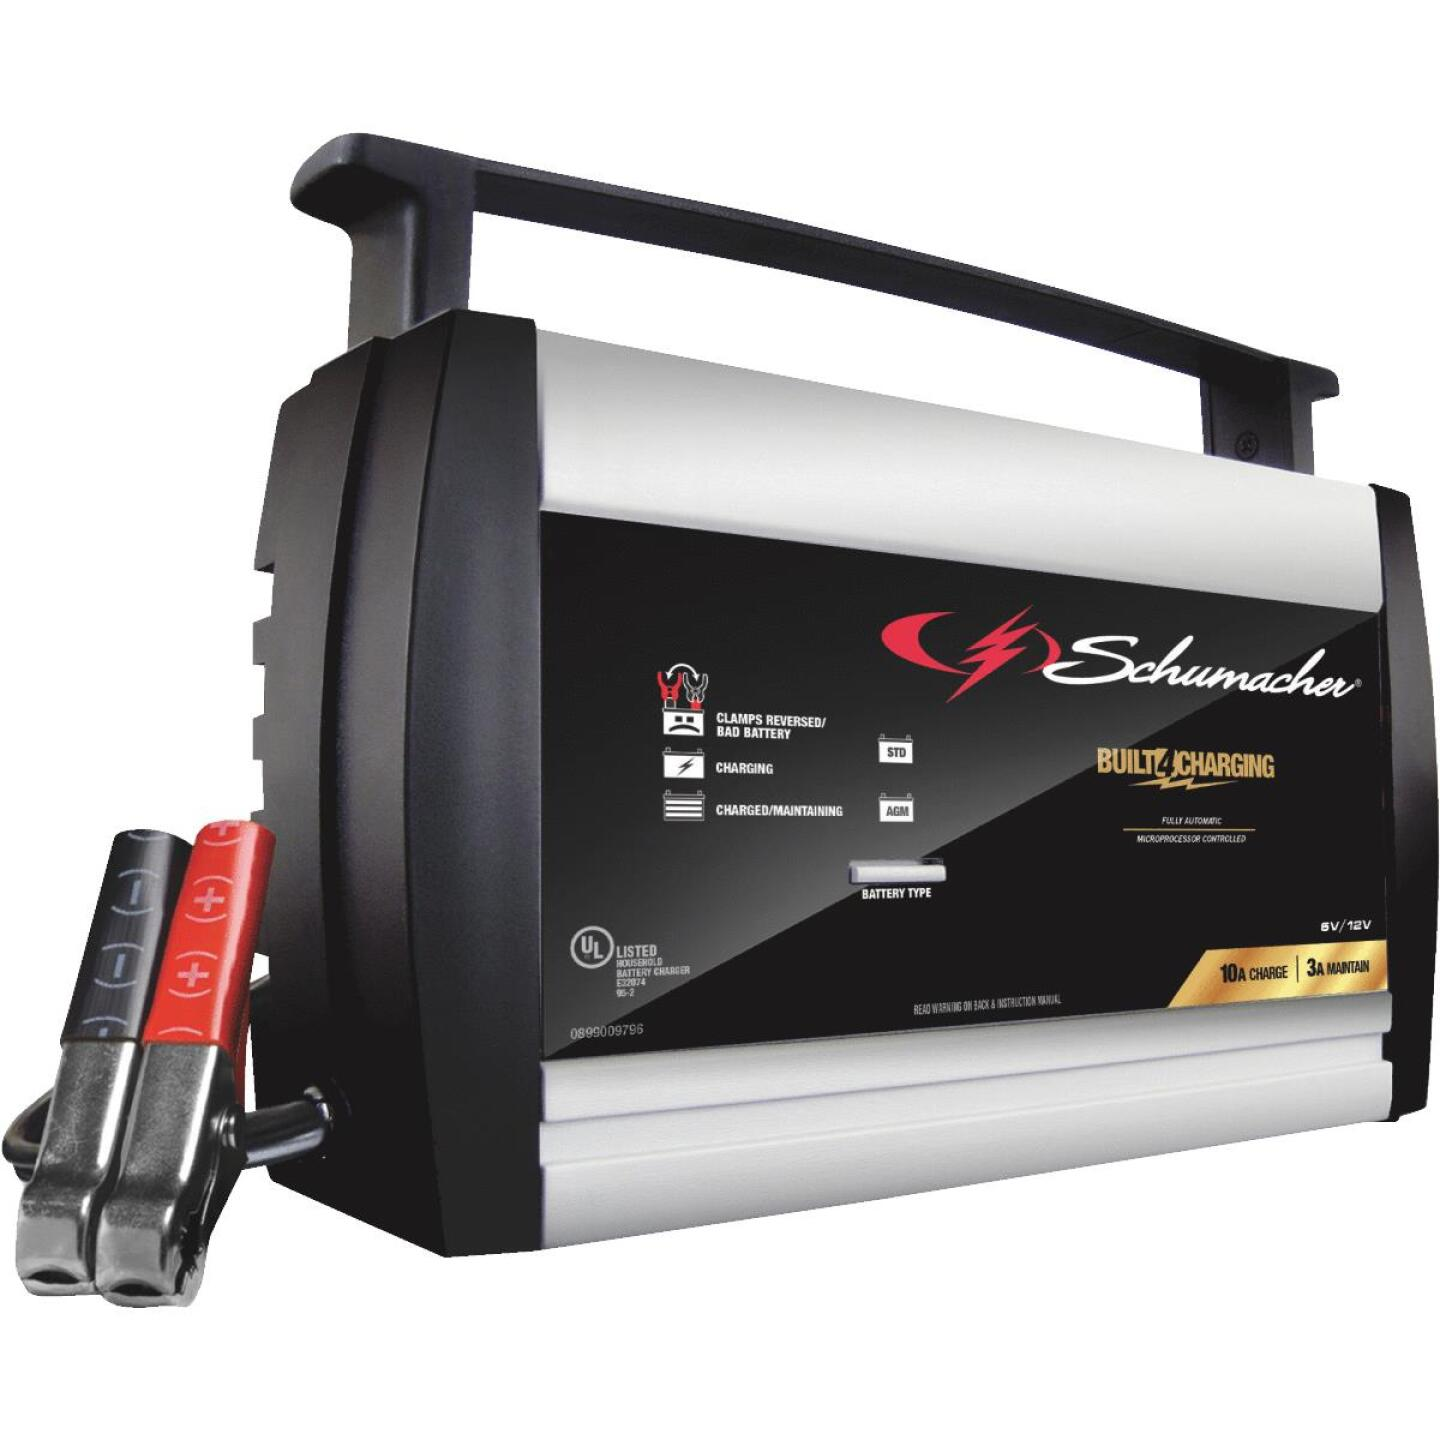 Schumacher Automatic 6V and 12V 10A Automotive and Marine Battery Charger Image 1